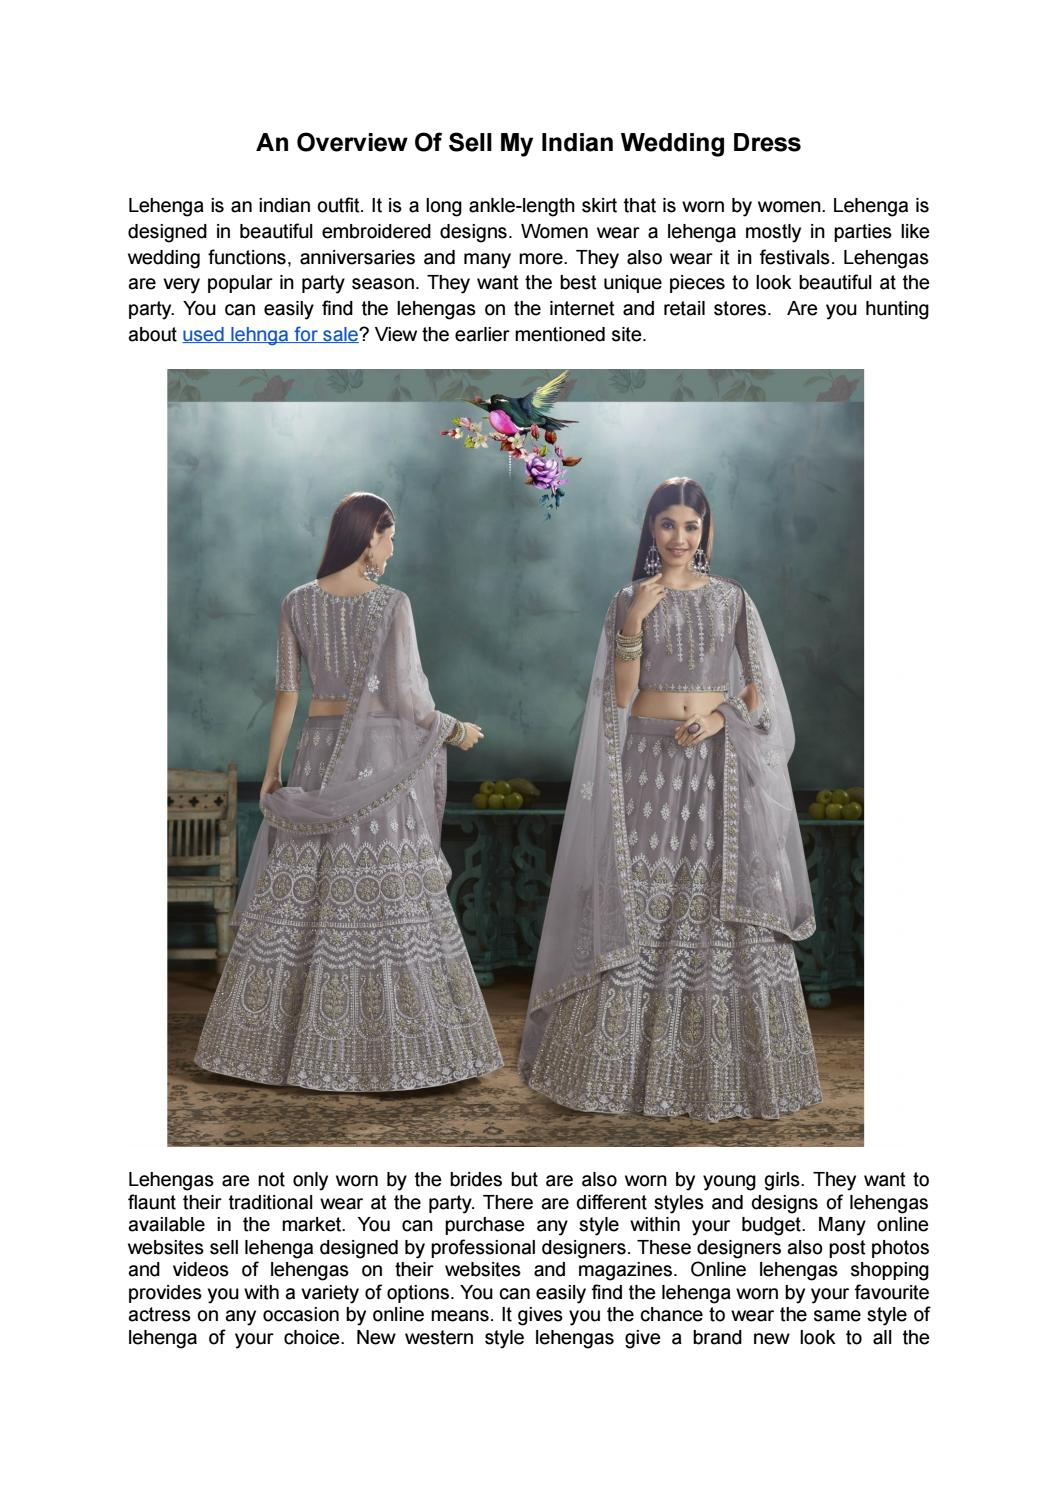 An Overview Of Sell My Indian Wedding Dress By Adriana7gsen Issuu